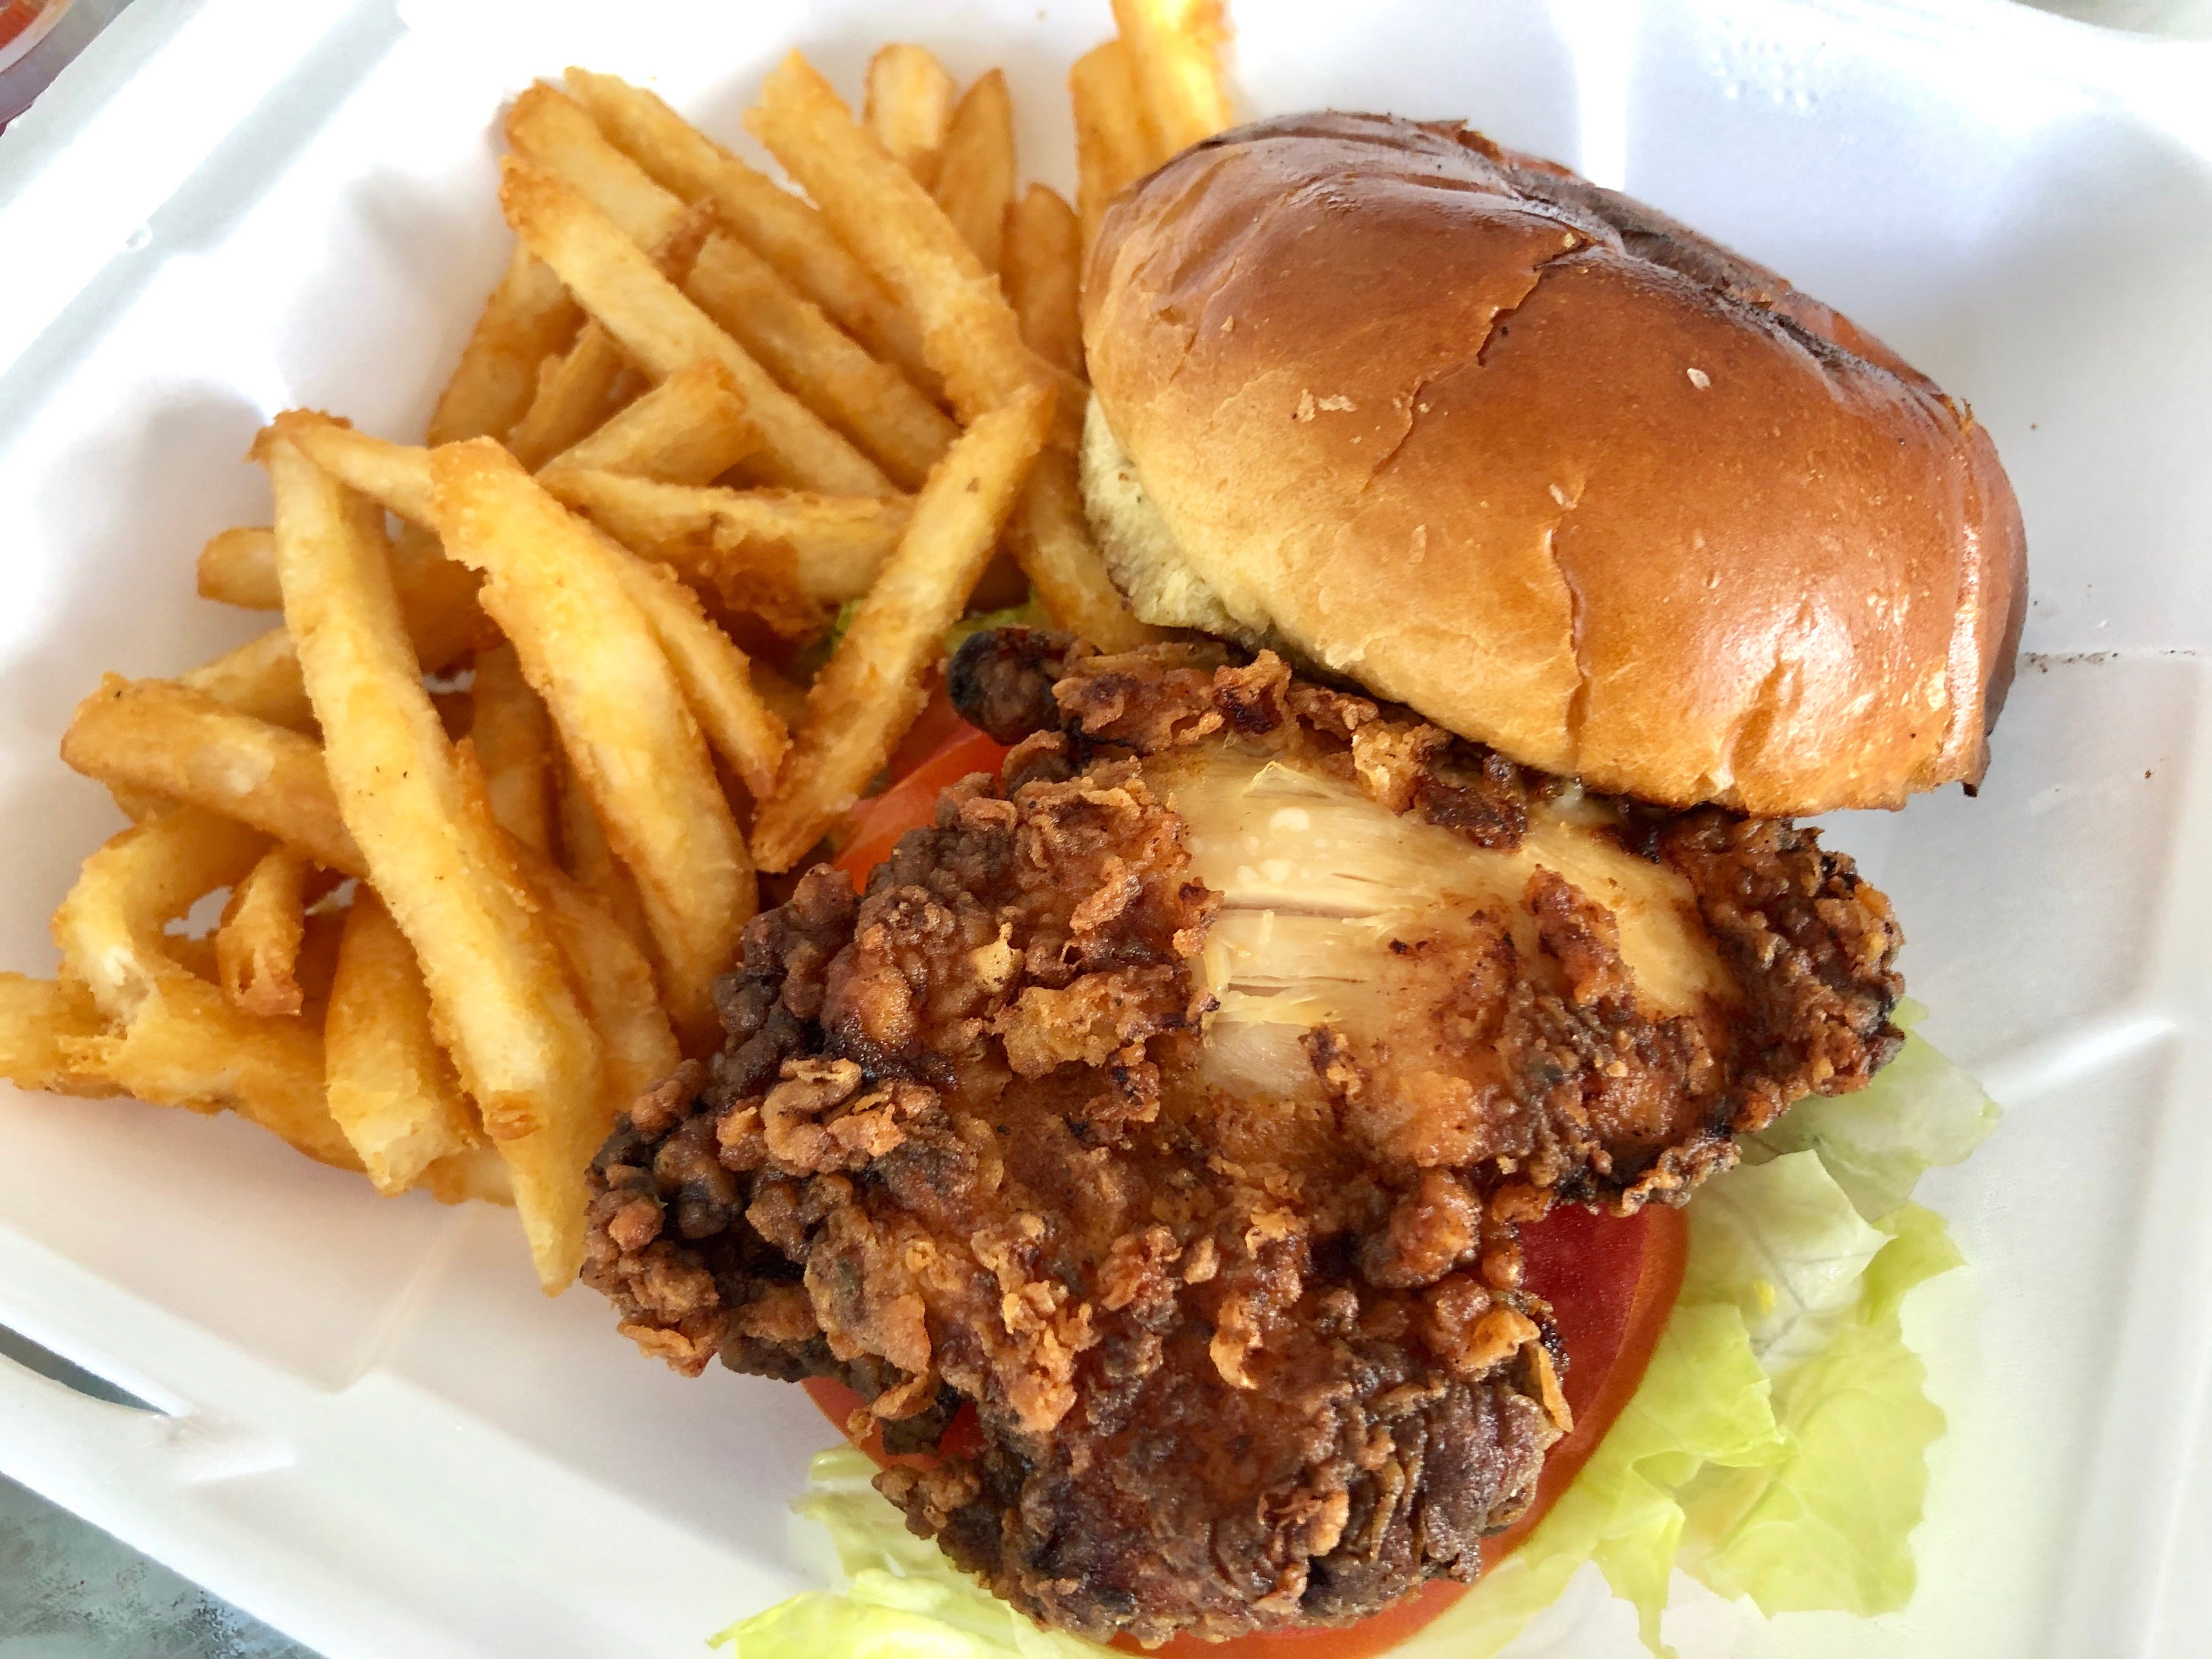 Crispy chicken sandwich is new to the lunch menu at Drop the Anchor seafood restaurant in North Naples.